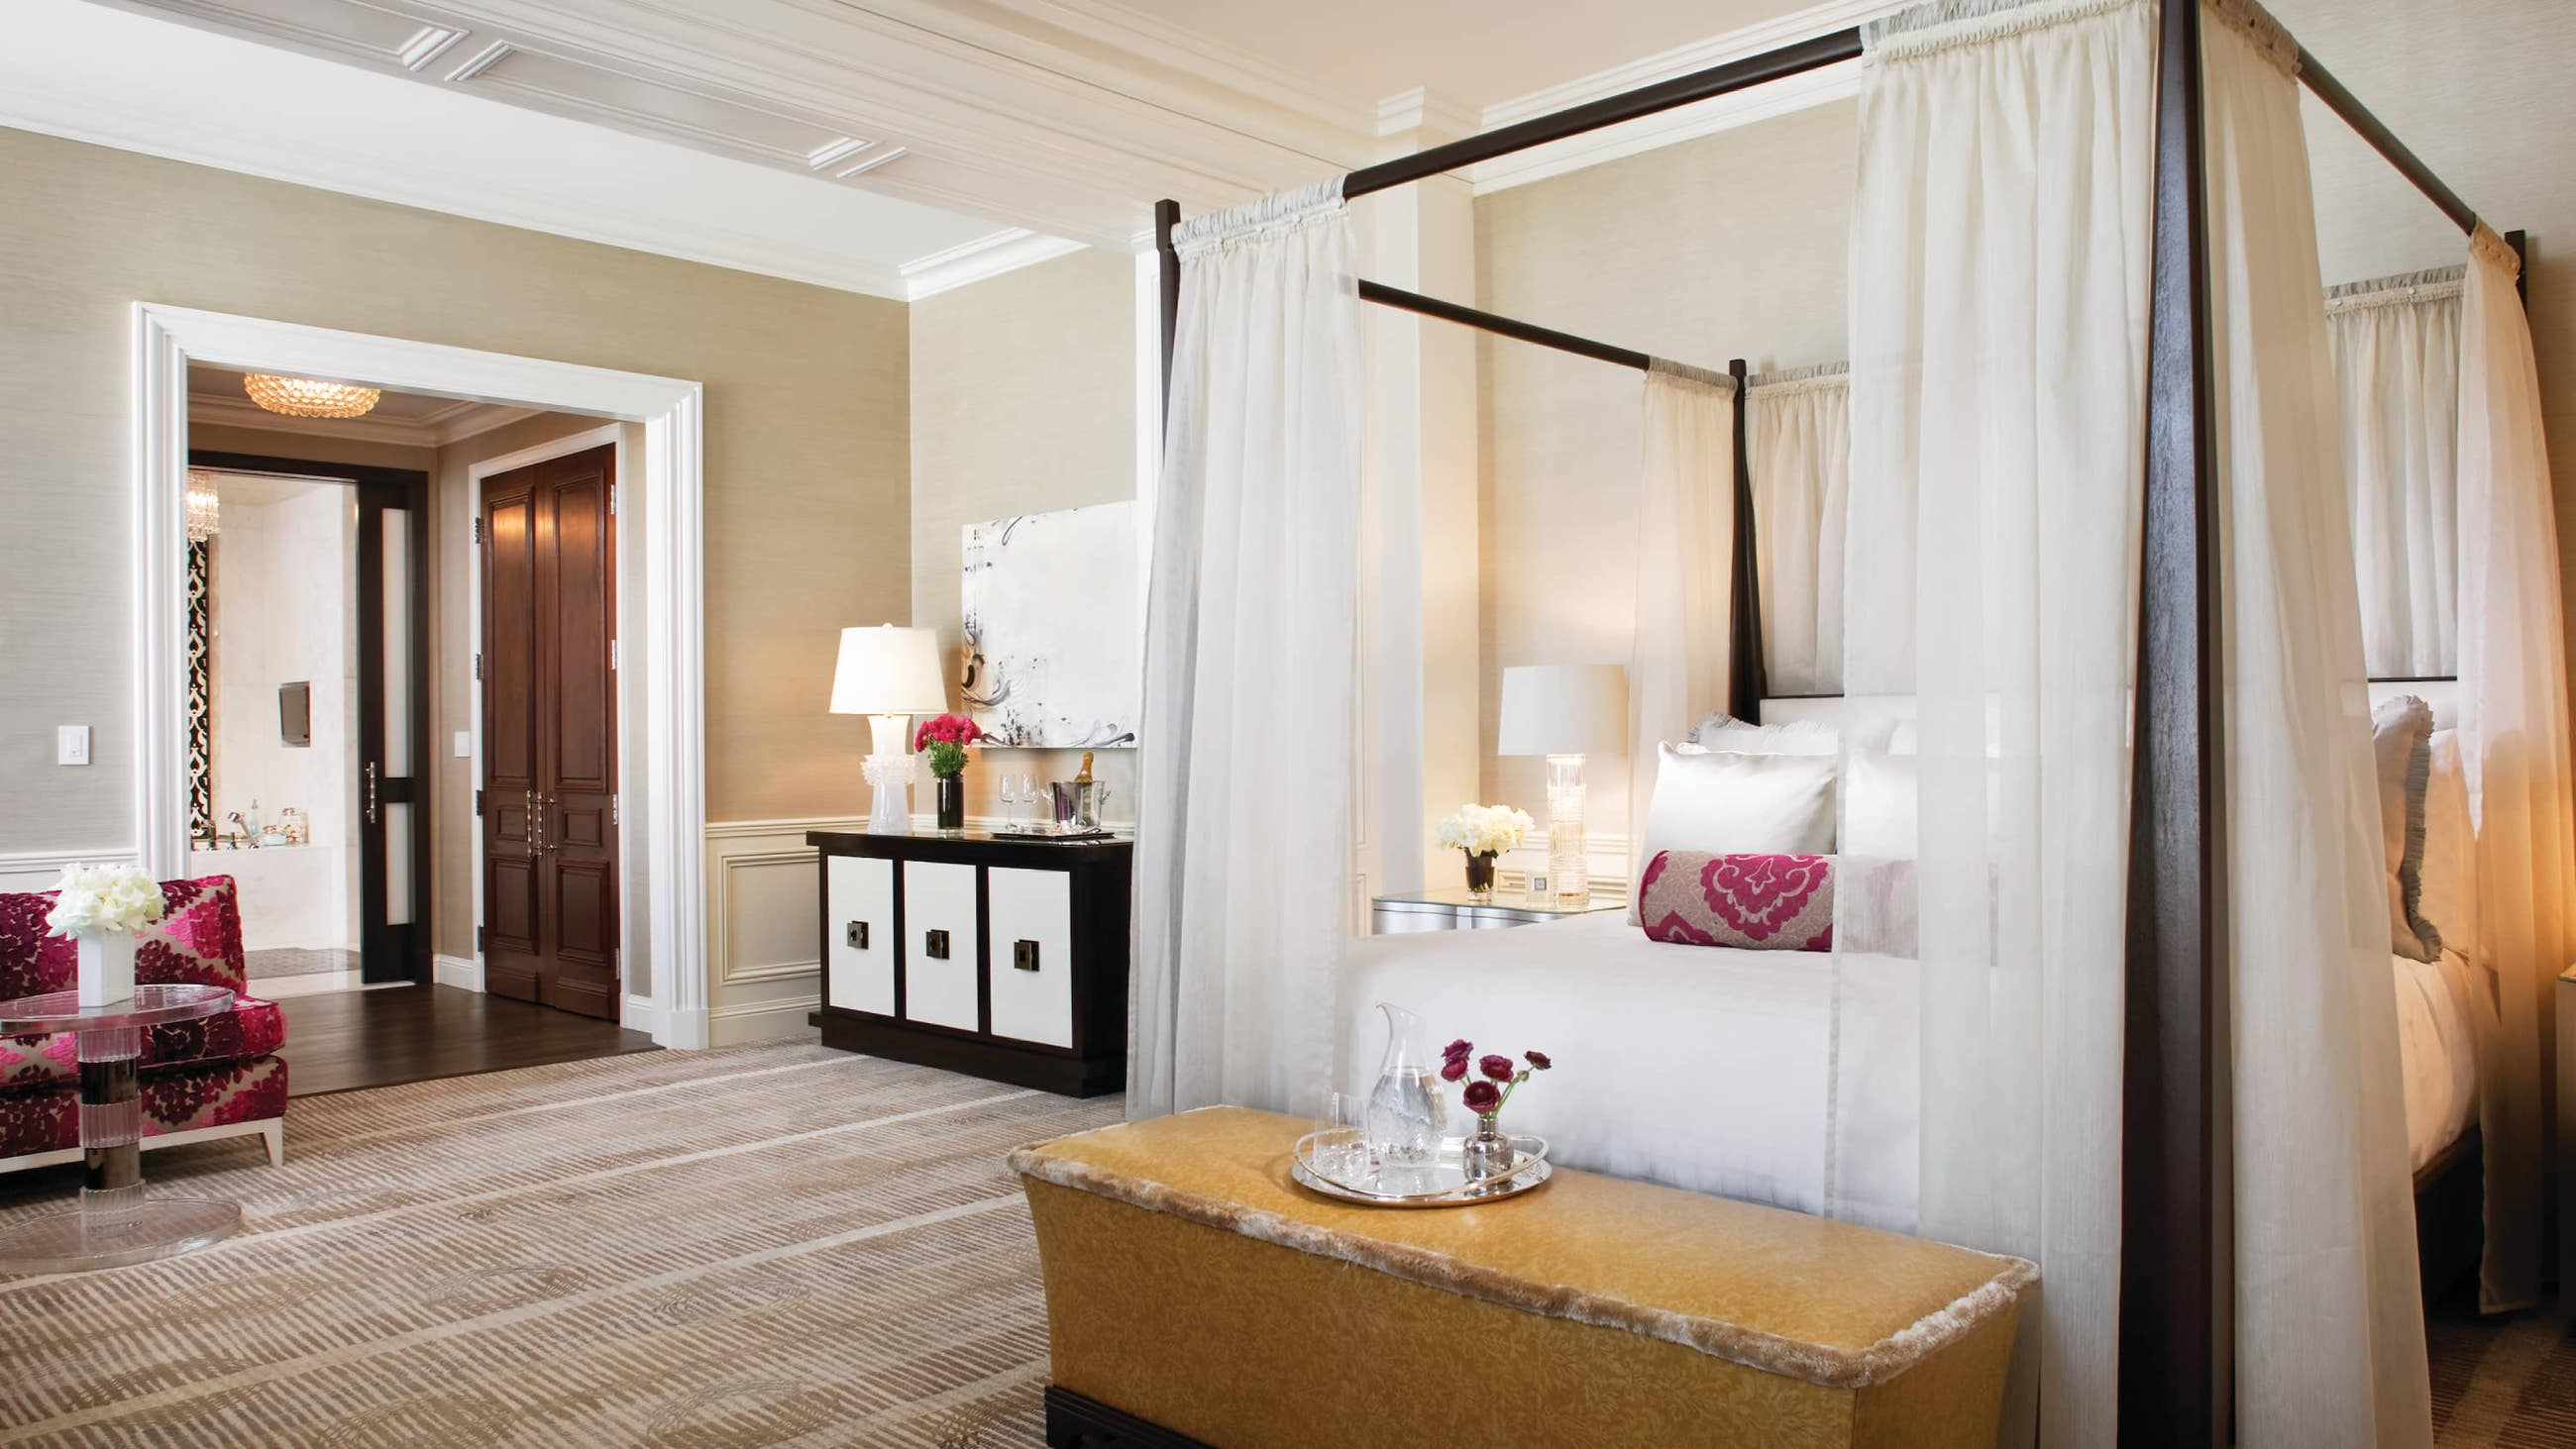 Bedroom of the Wilshire Presidential Suite in the Beverly Wilshire